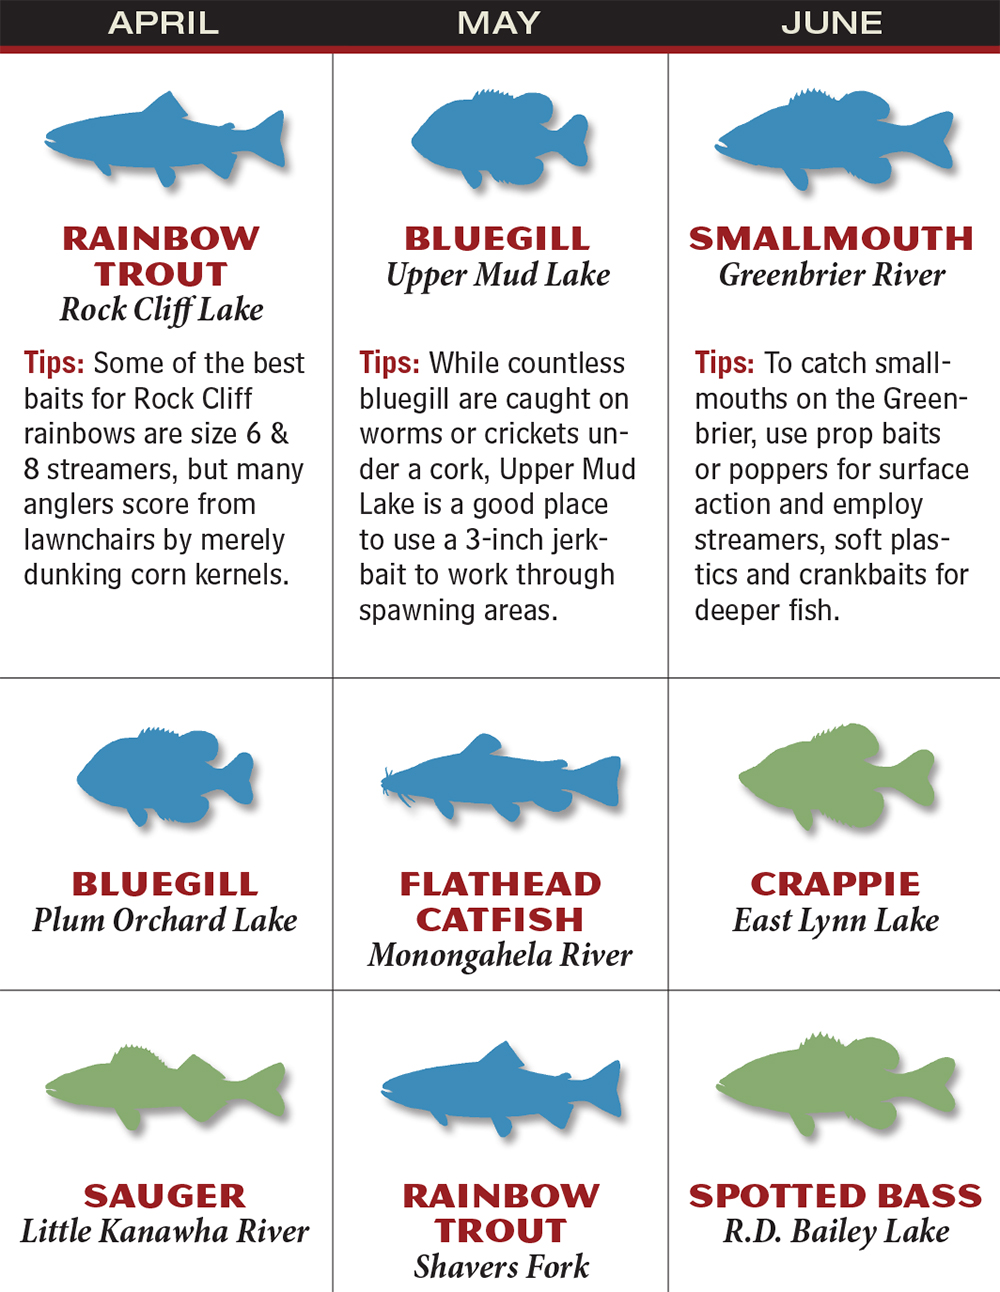 West Virginia 2016 Fishing Calendar